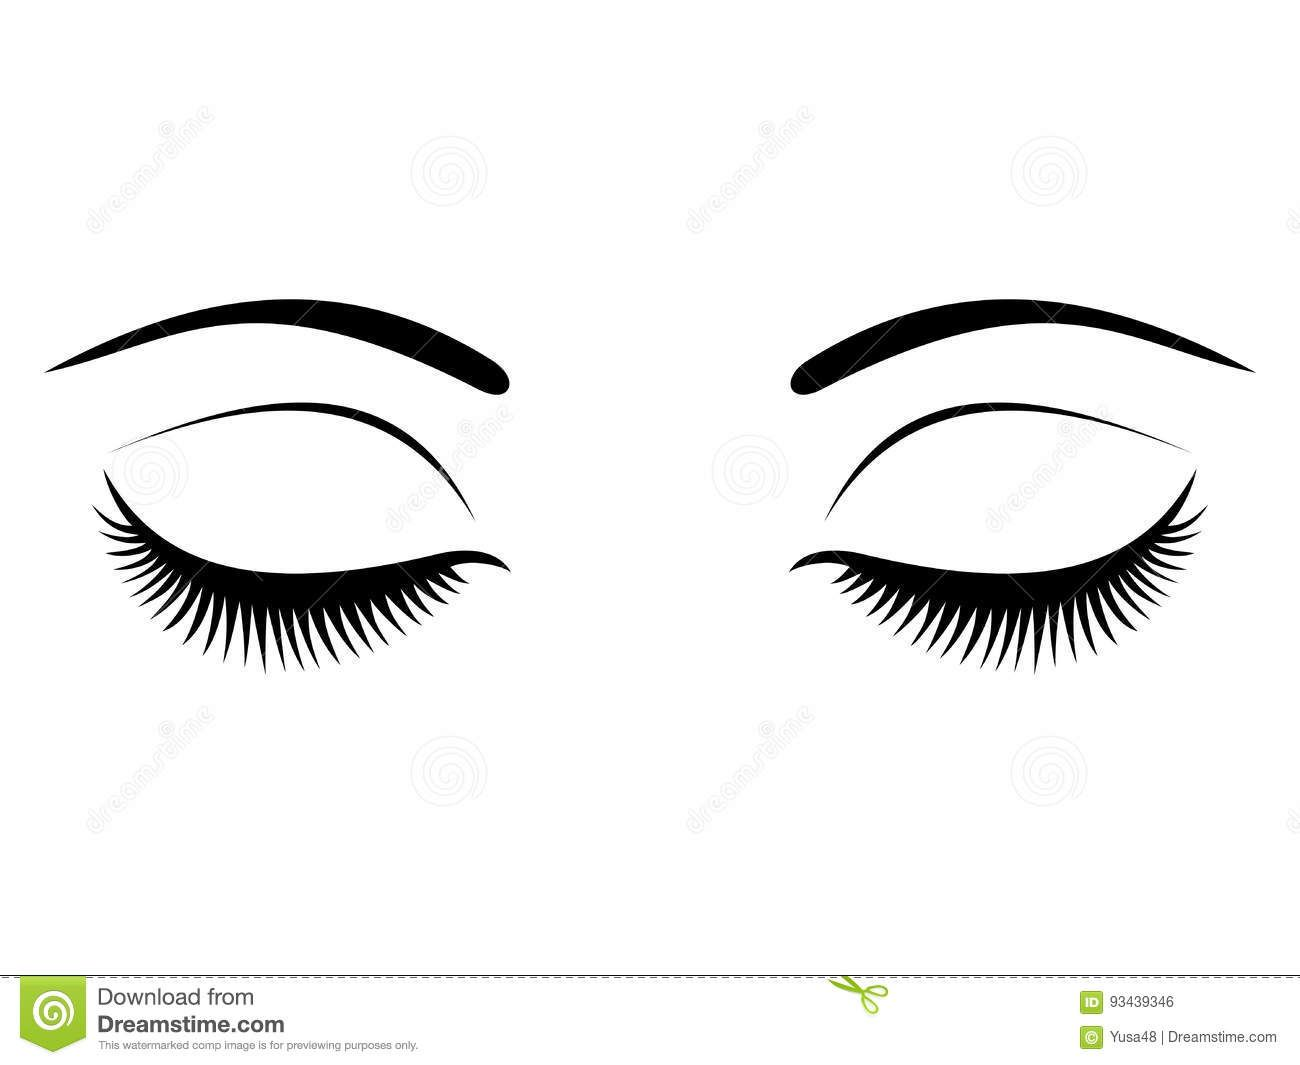 Closed eyes with black eyelashes on a white background download from over 68 million high quality stock photos images vectors sign up for free today